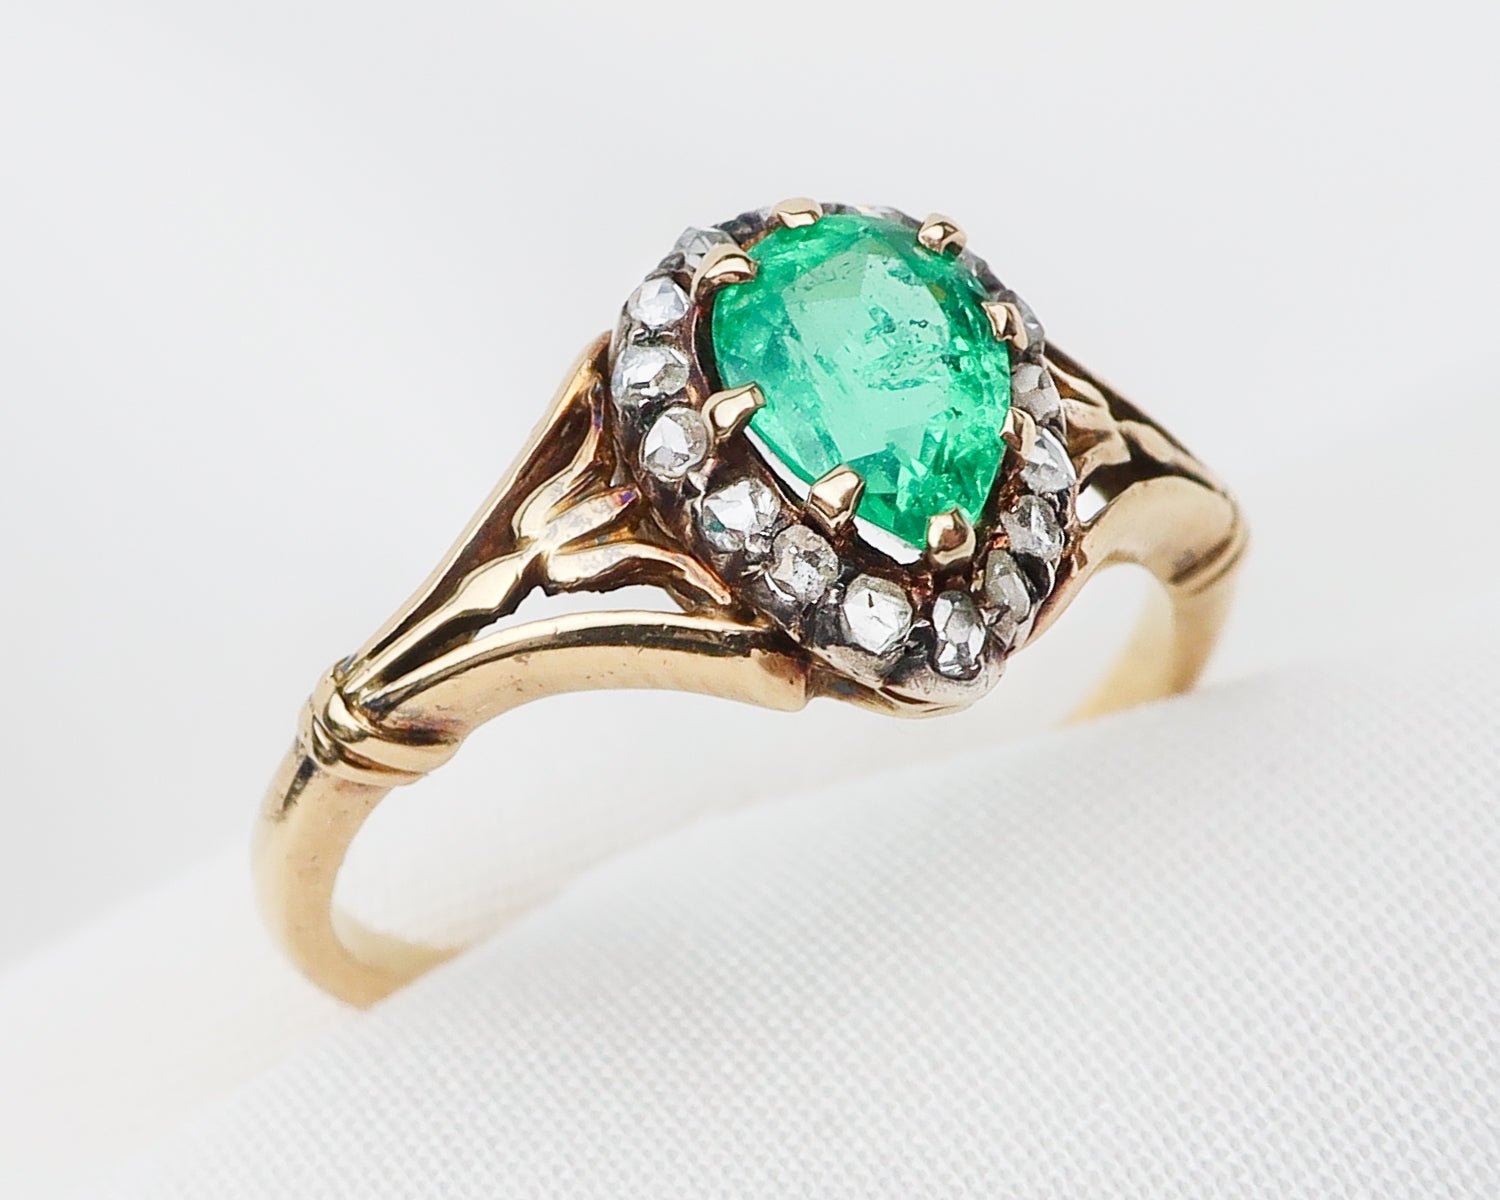 Circa 1900 Pear-Cut Emerald & Diamond Ring